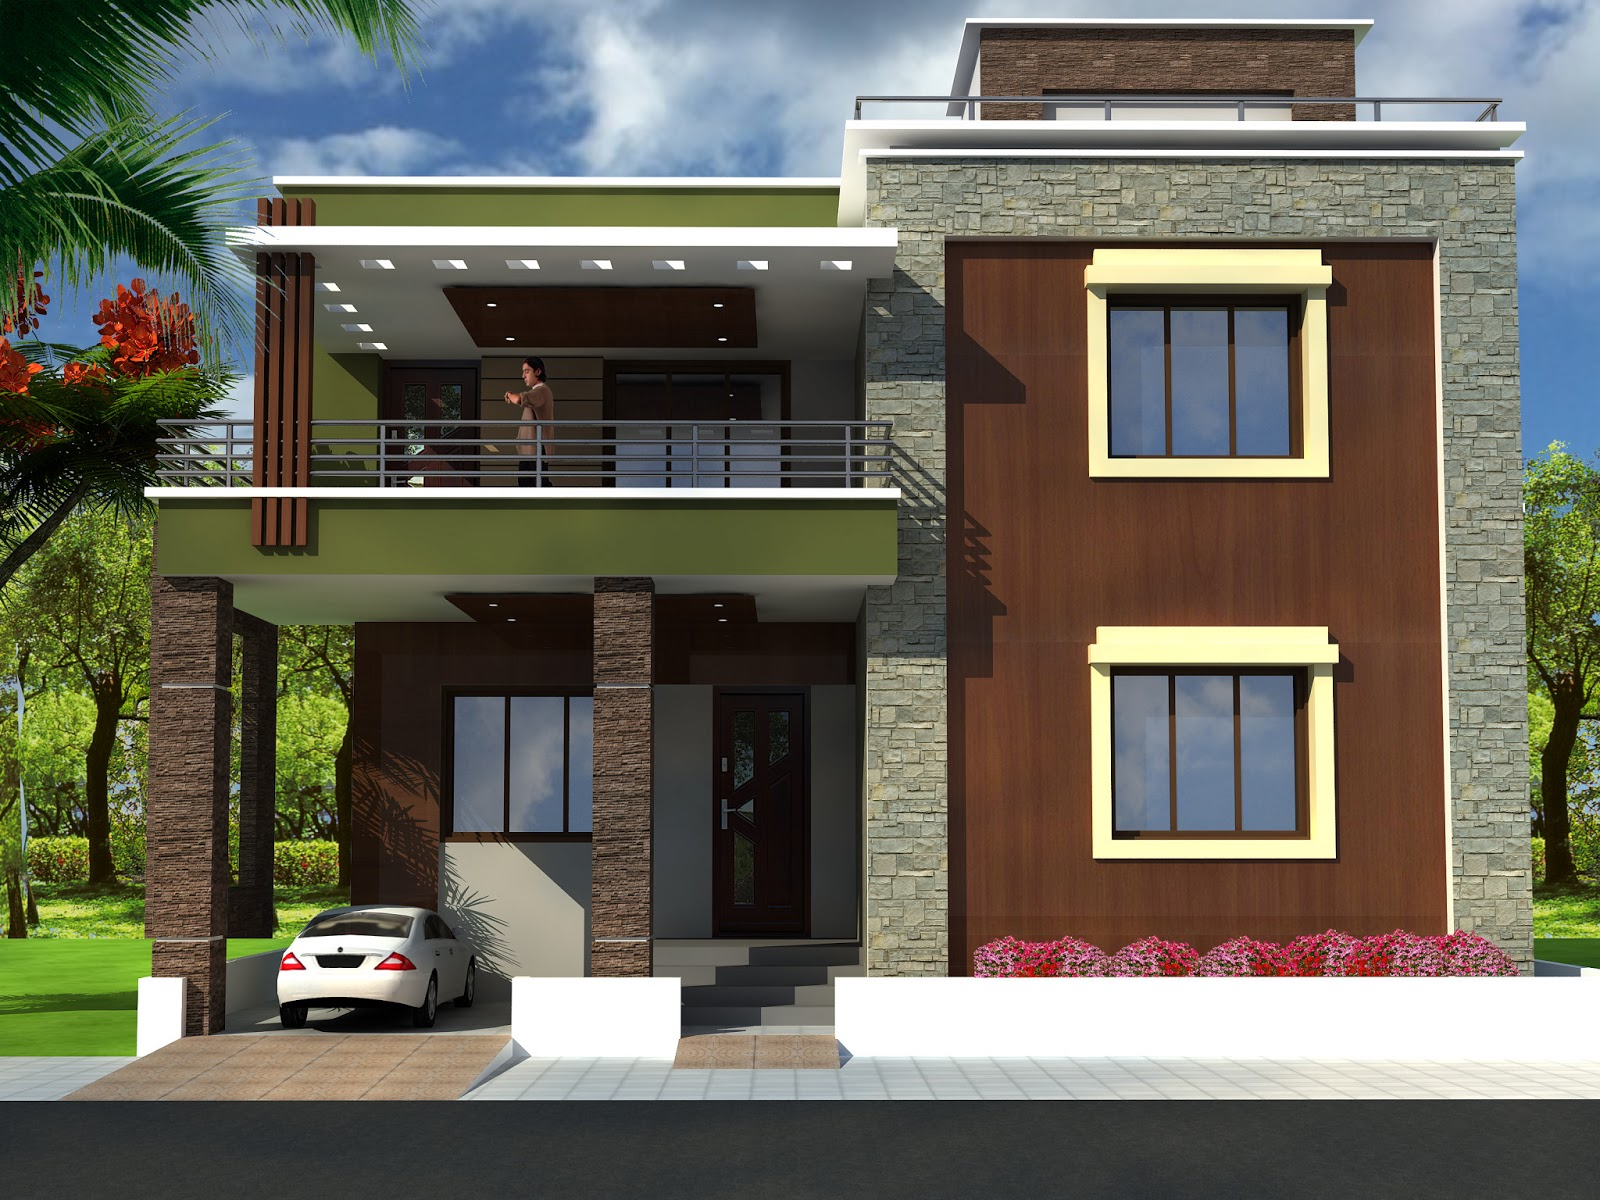 573?wu003d381 Exterior House Design Front Elevation On House Front Design Latest